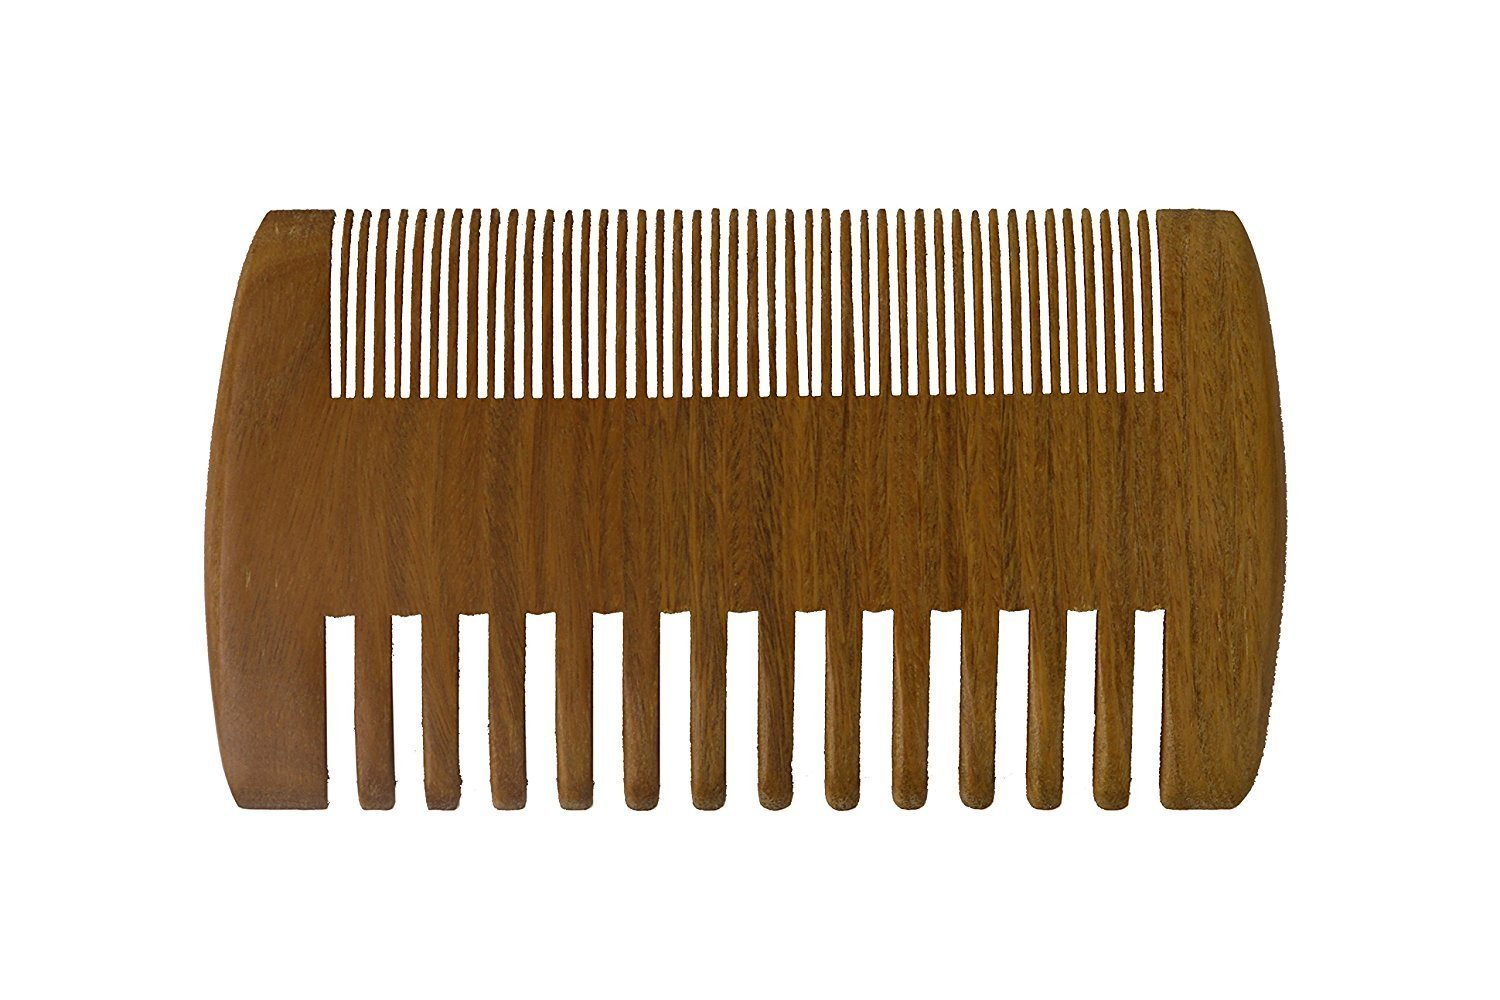 Mr Beard Comb | 8 pcs Pure 2in1 Sandalwood Pocket Comb | Wide Fine Teeth |1112.03